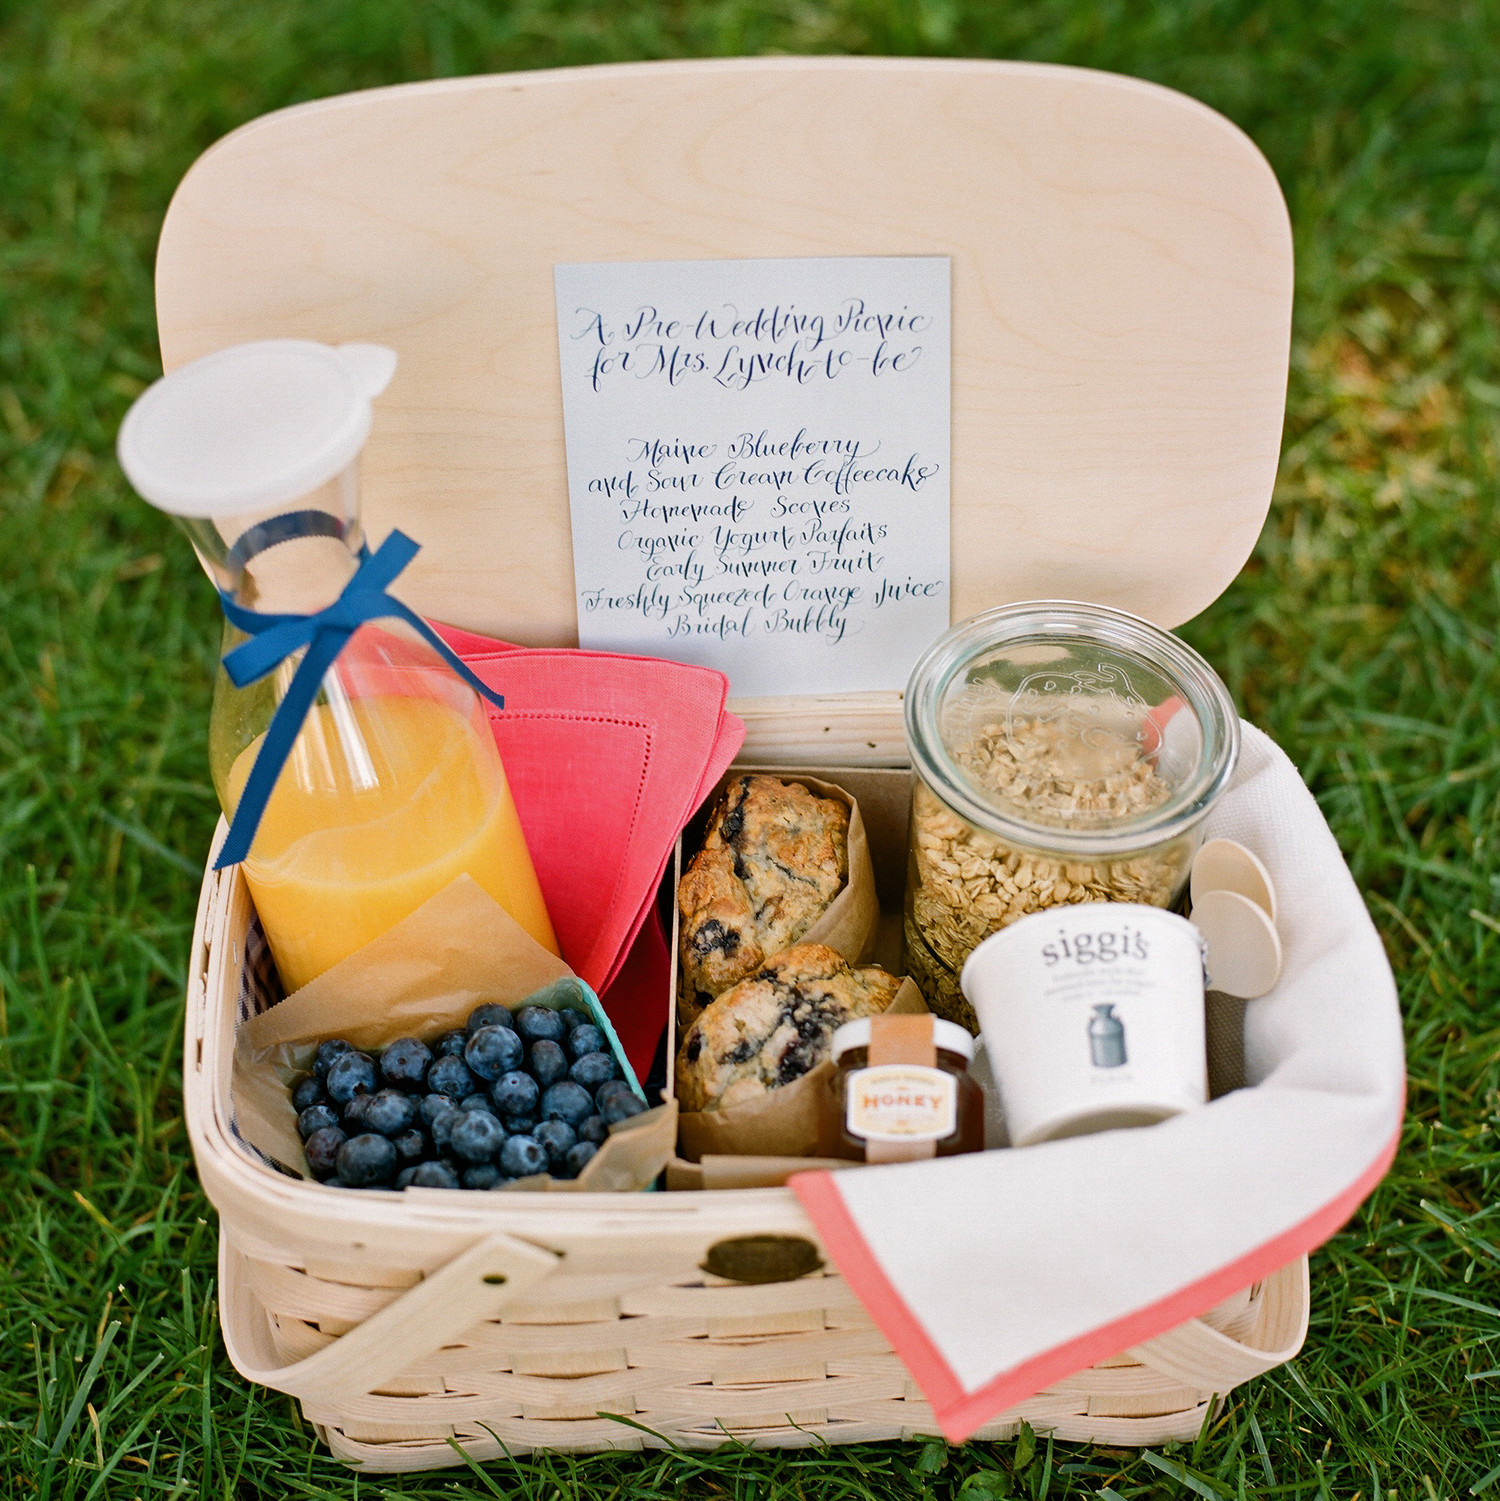 Picnic-Inspired Wedding Ideas | Martha Stewart Weddings